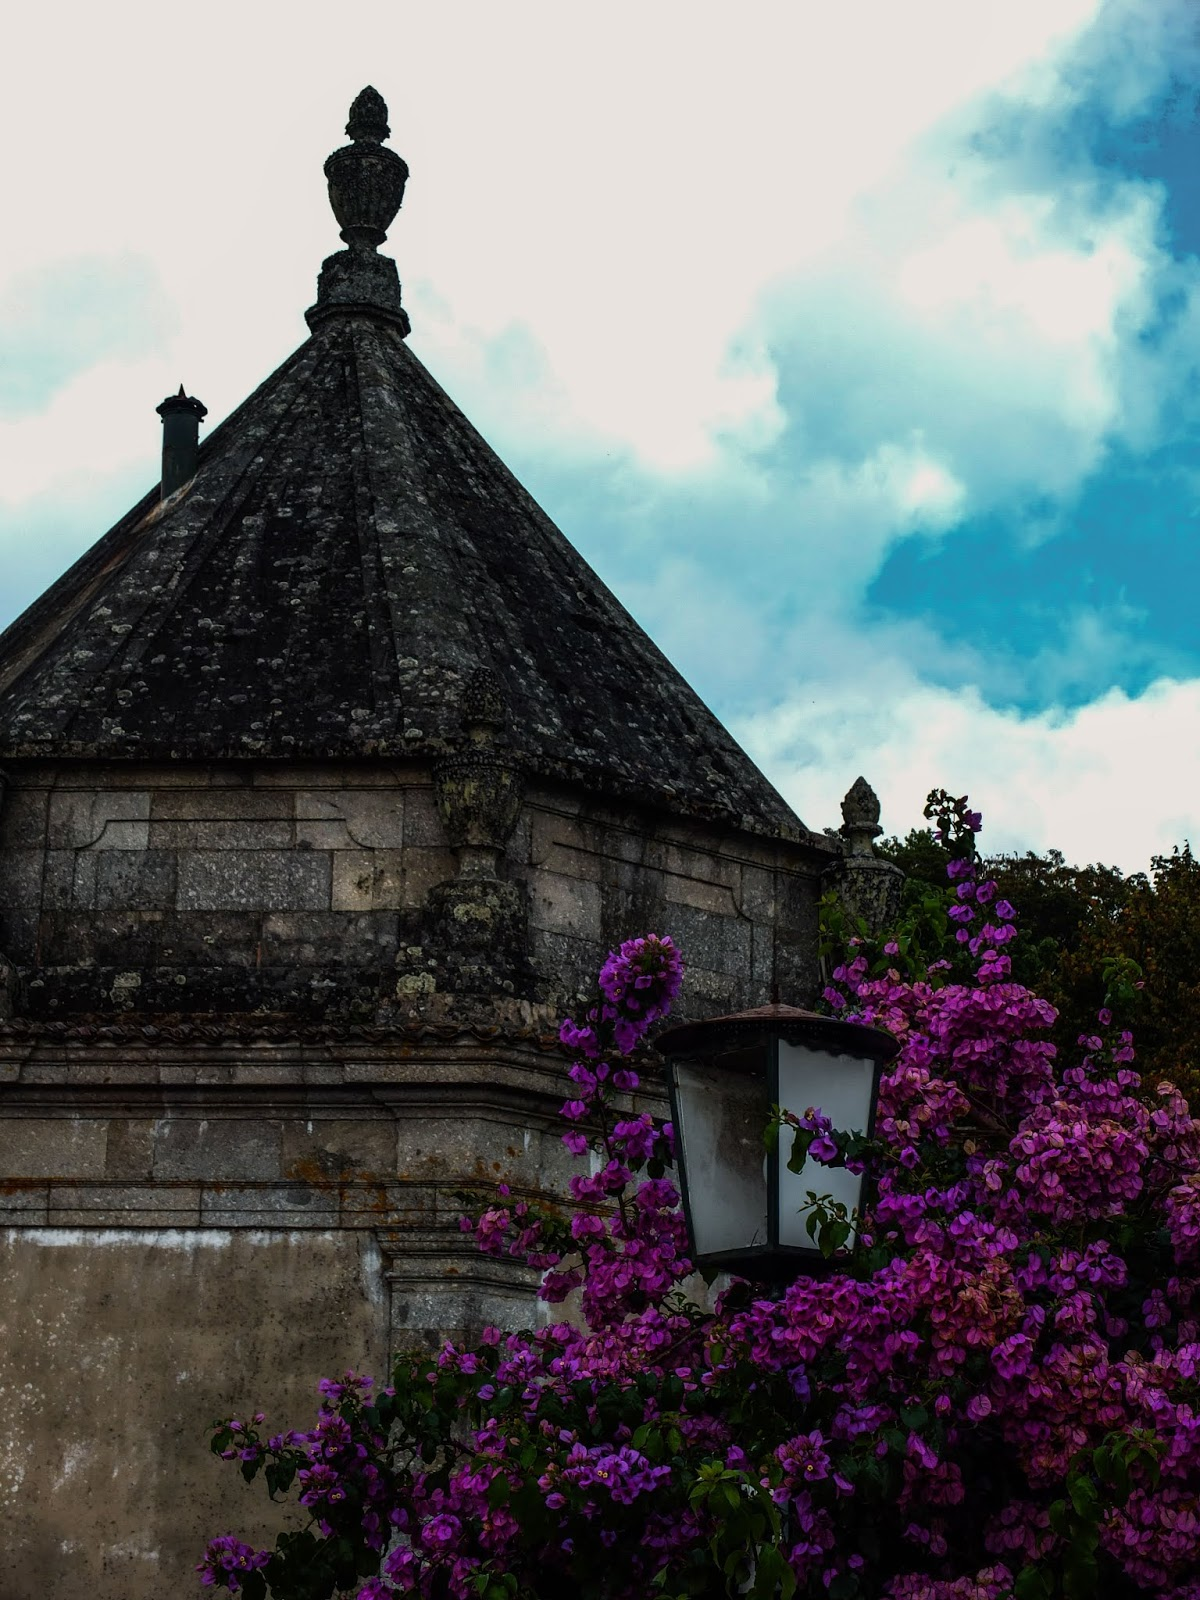 A chapel with pink flowers from Bom Jesus do Monte Sanctuary in Braga, Portugal.